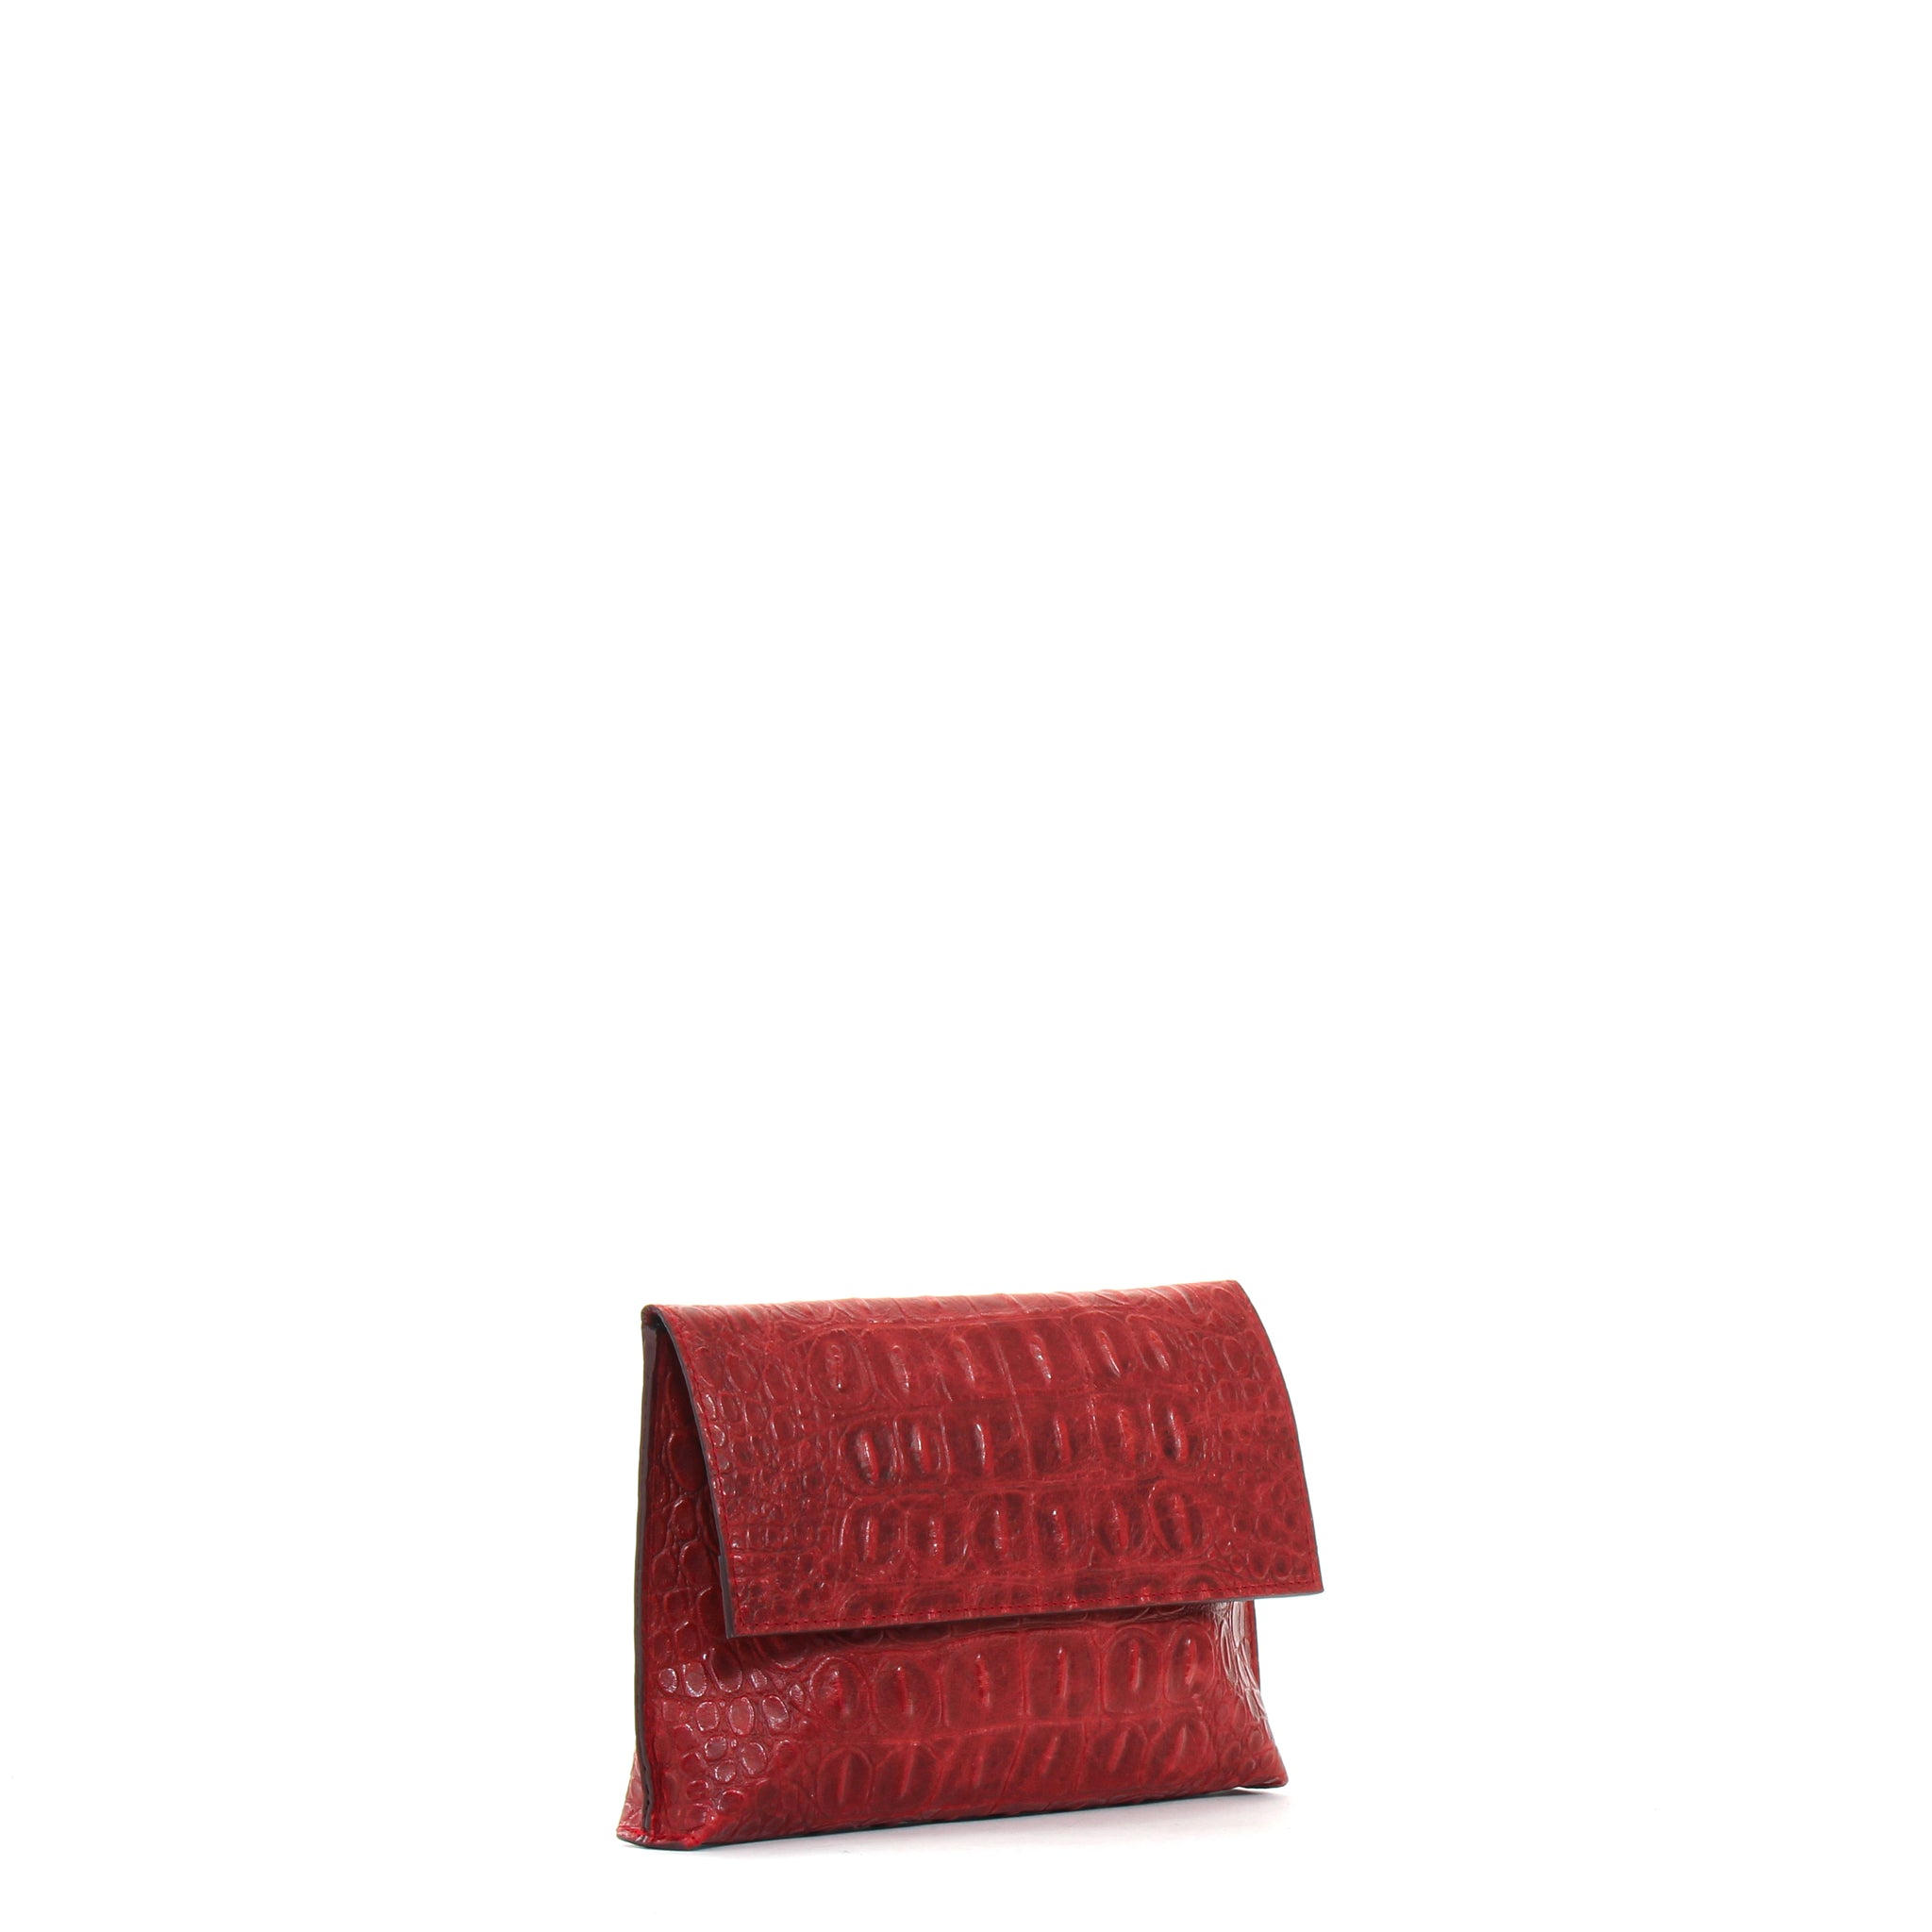 LARGE FOLDOVER CLUTCH RED EMBOSSED GATOR